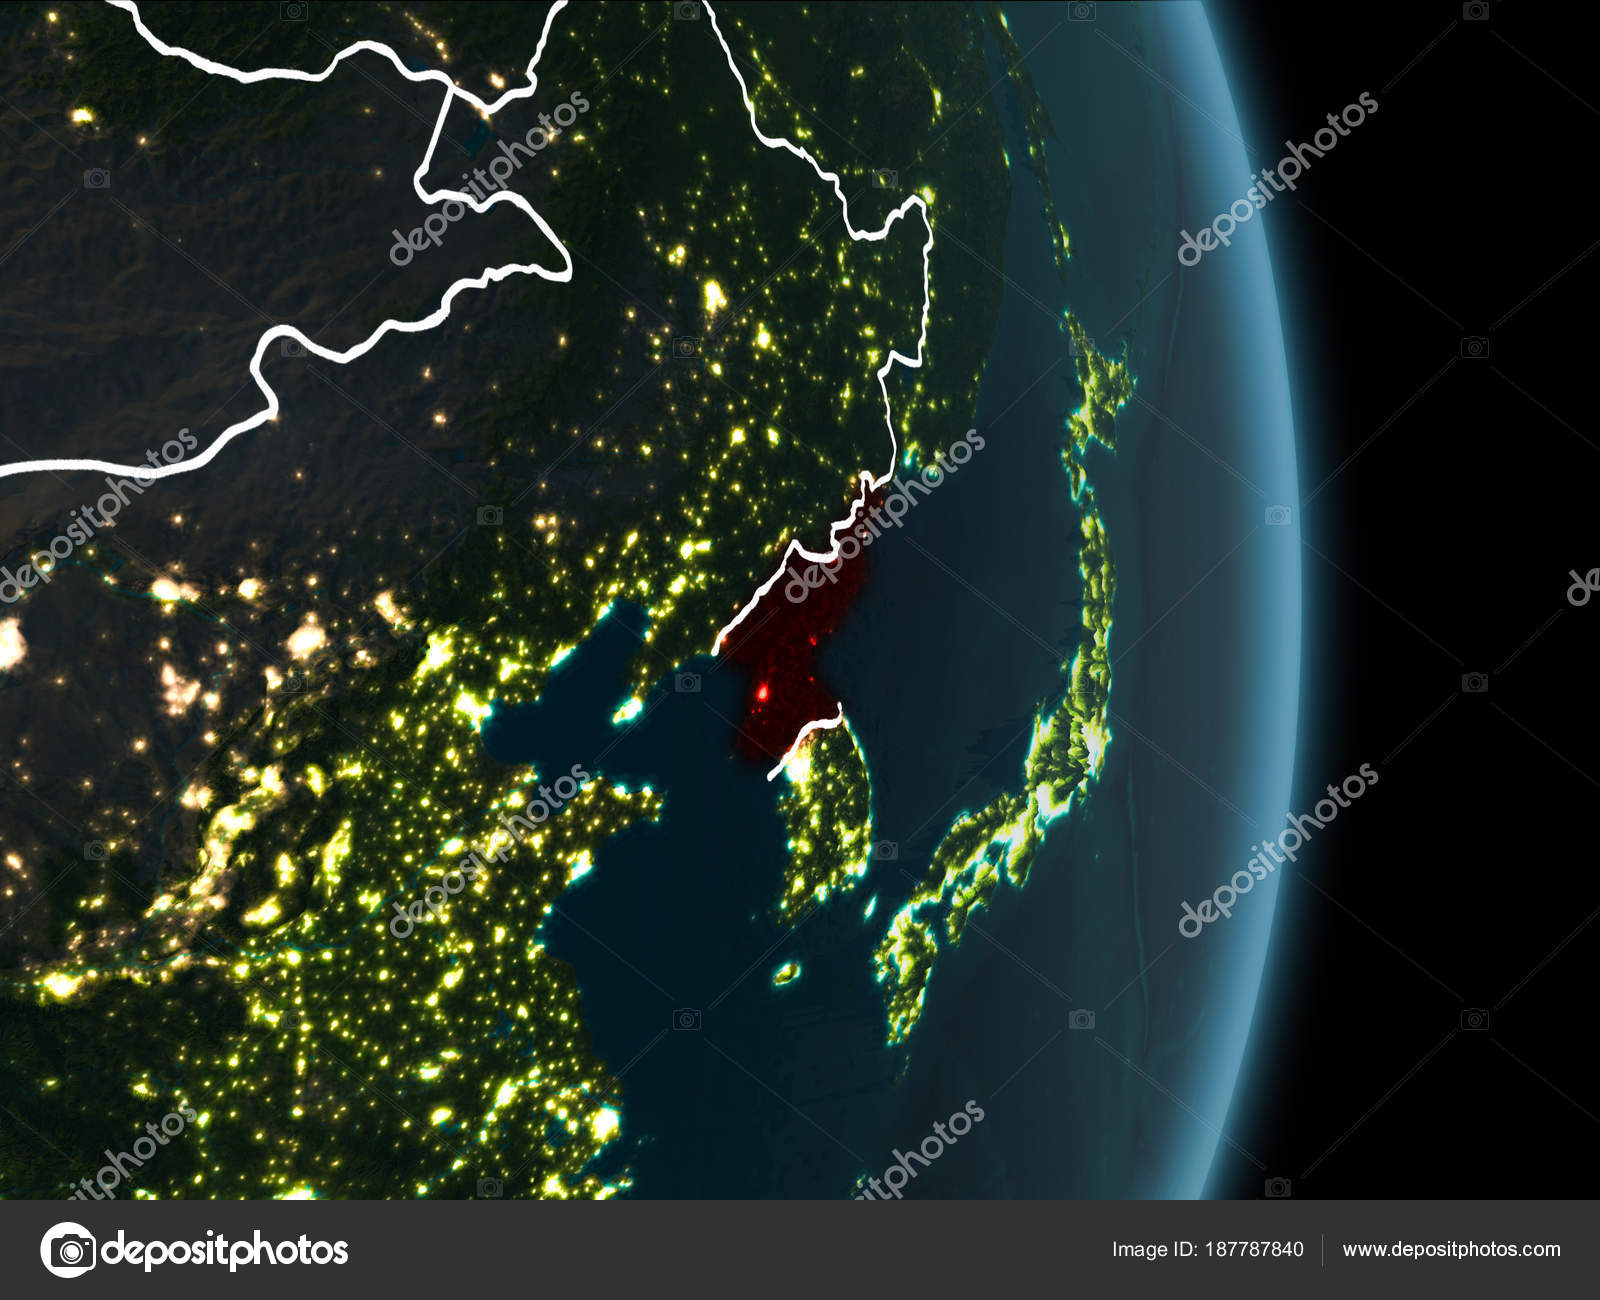 Orbit view of north korea at night stock photo tomiger 187787840 map of north korea in red as seen from space on planet earth at night with white borderlines and city lights 3d illustration gumiabroncs Image collections